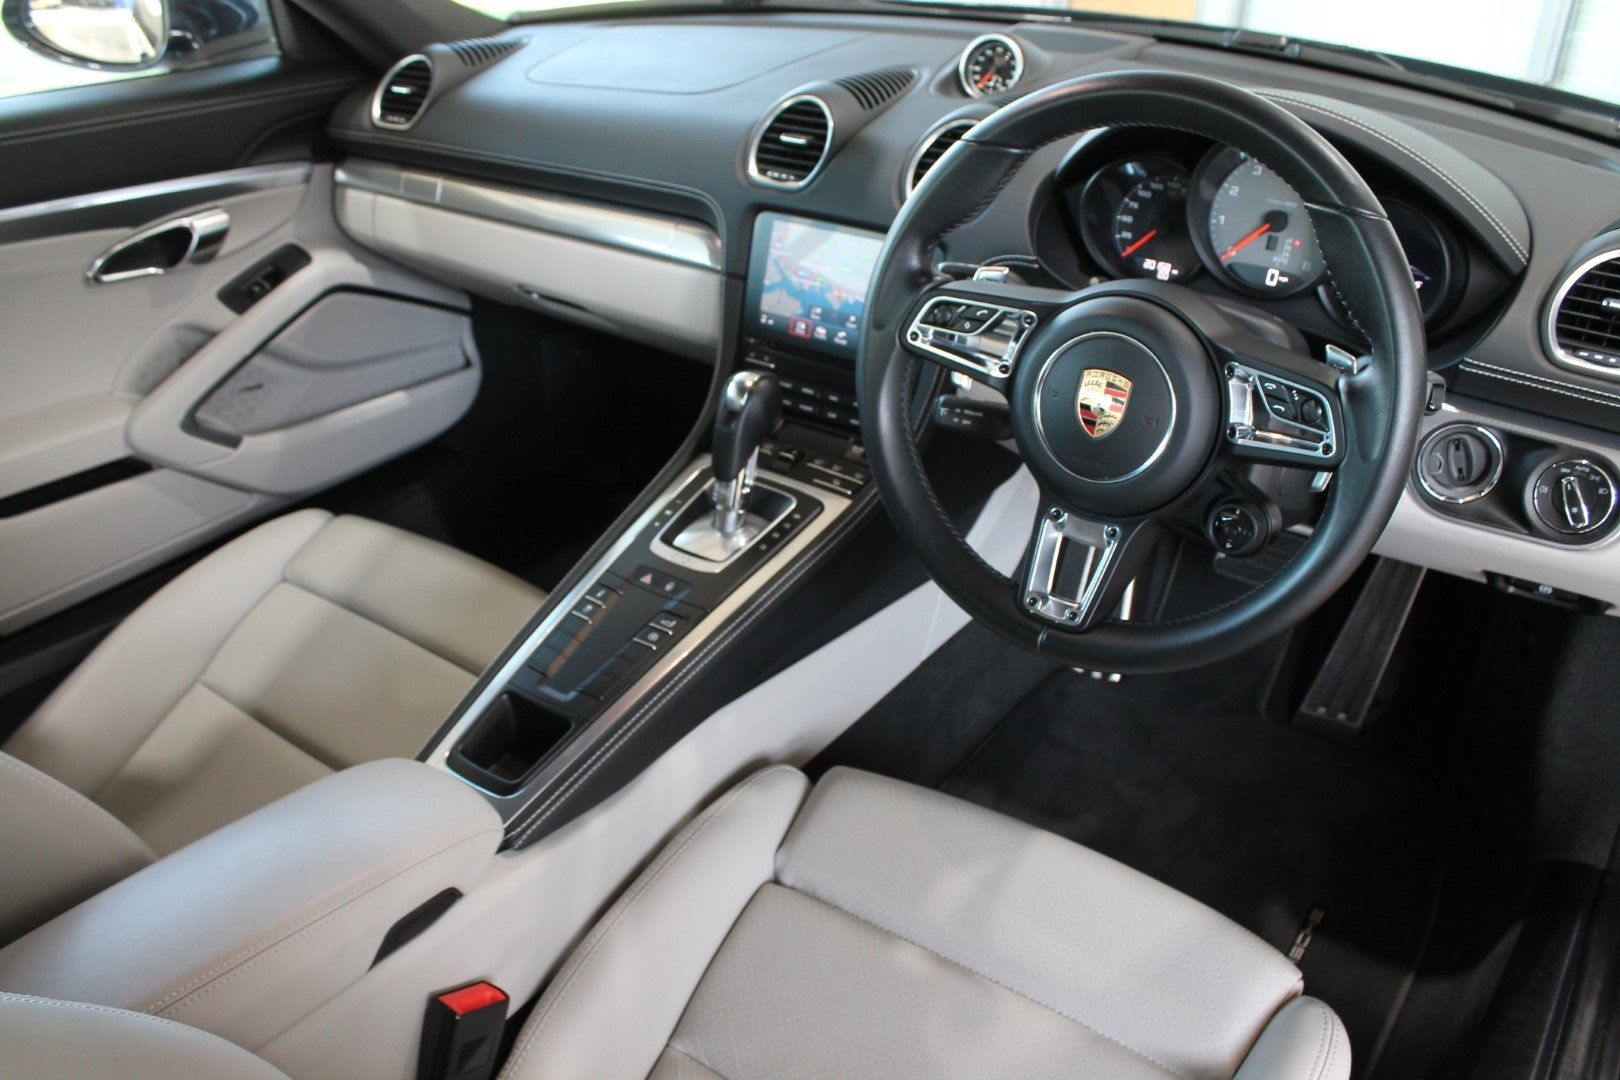 2016 Porsche Cayman (718) 2.5 S PDK - NOW SOLD - MORE REQUIRED For Sale (picture 9 of 12)